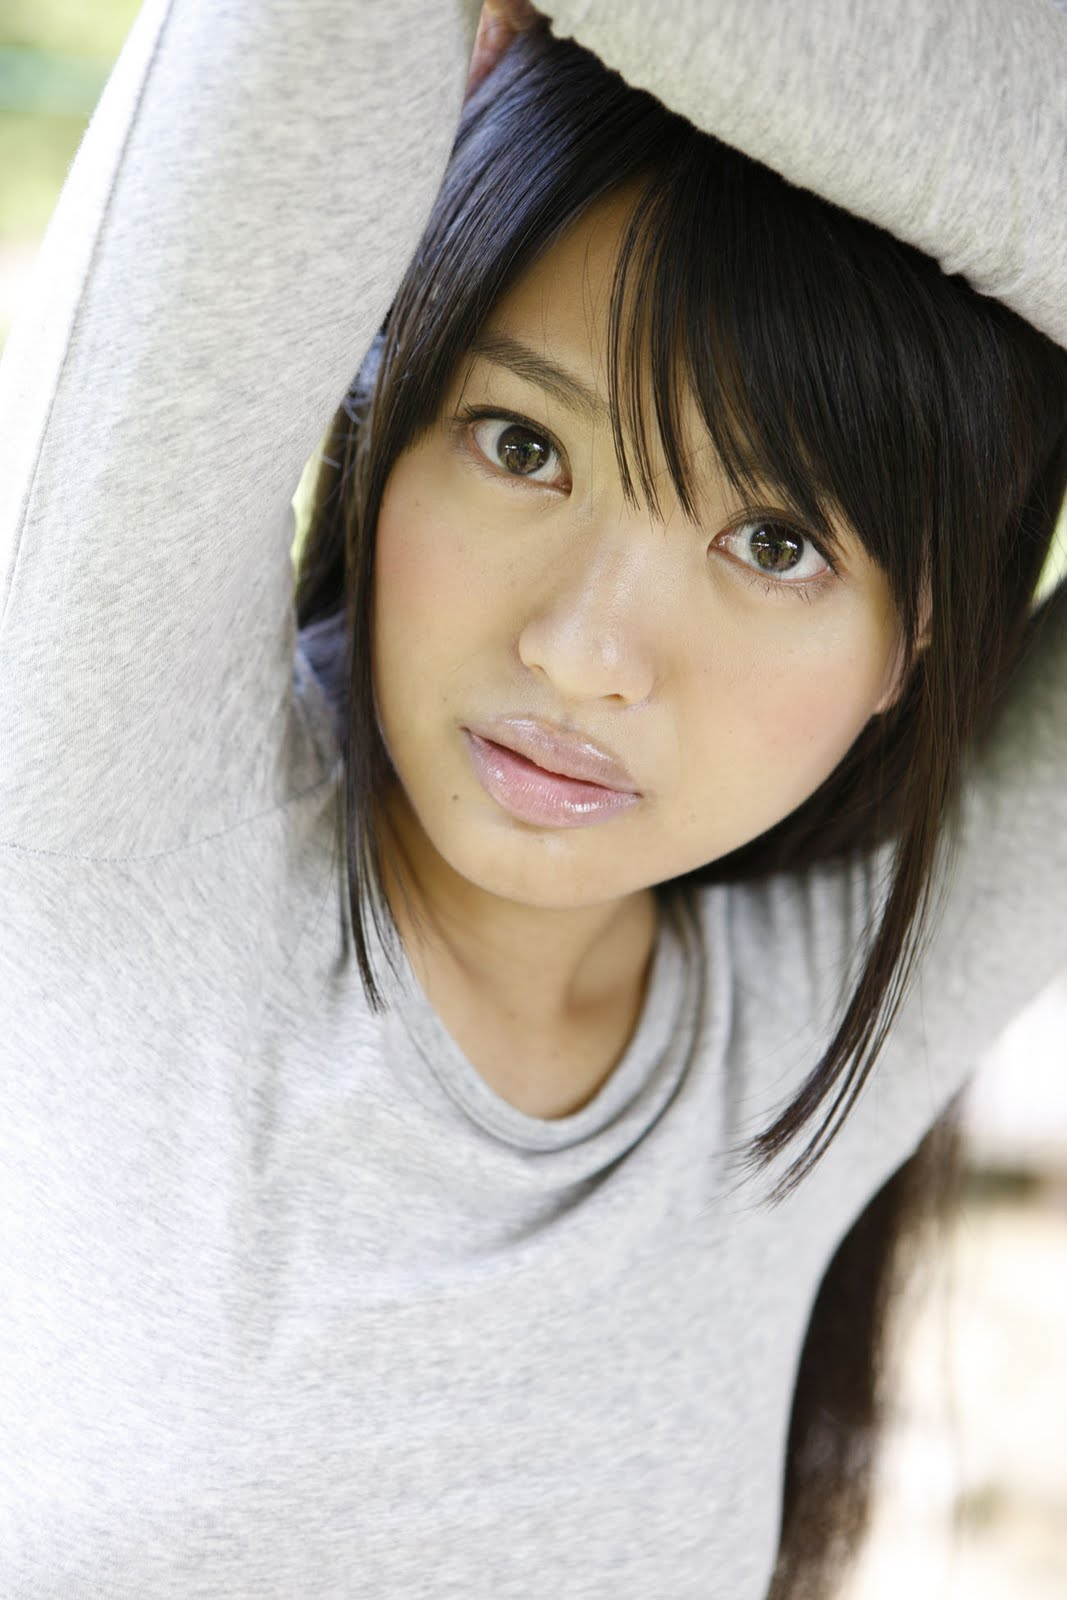 Rie Kitahara thick lip Japaense girl | Japan Girl